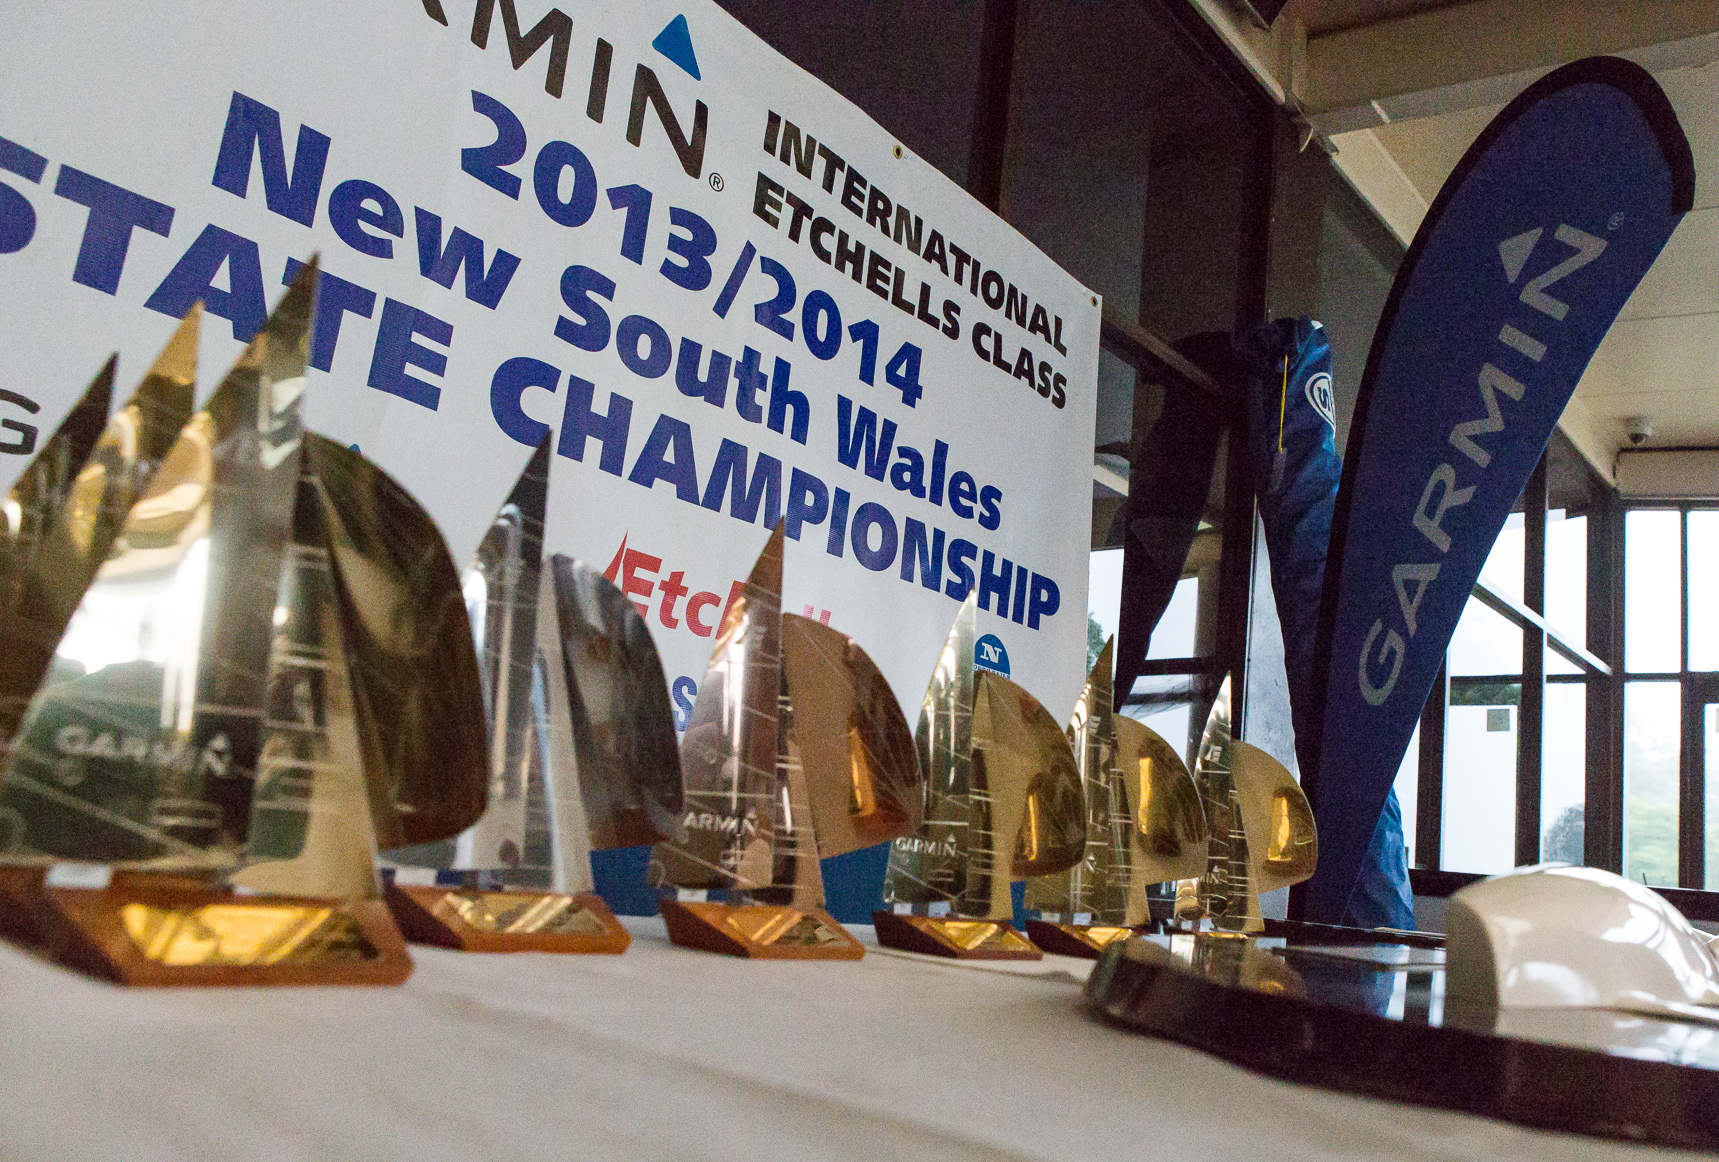 Part of the trophies and prizes on offer at this regatta